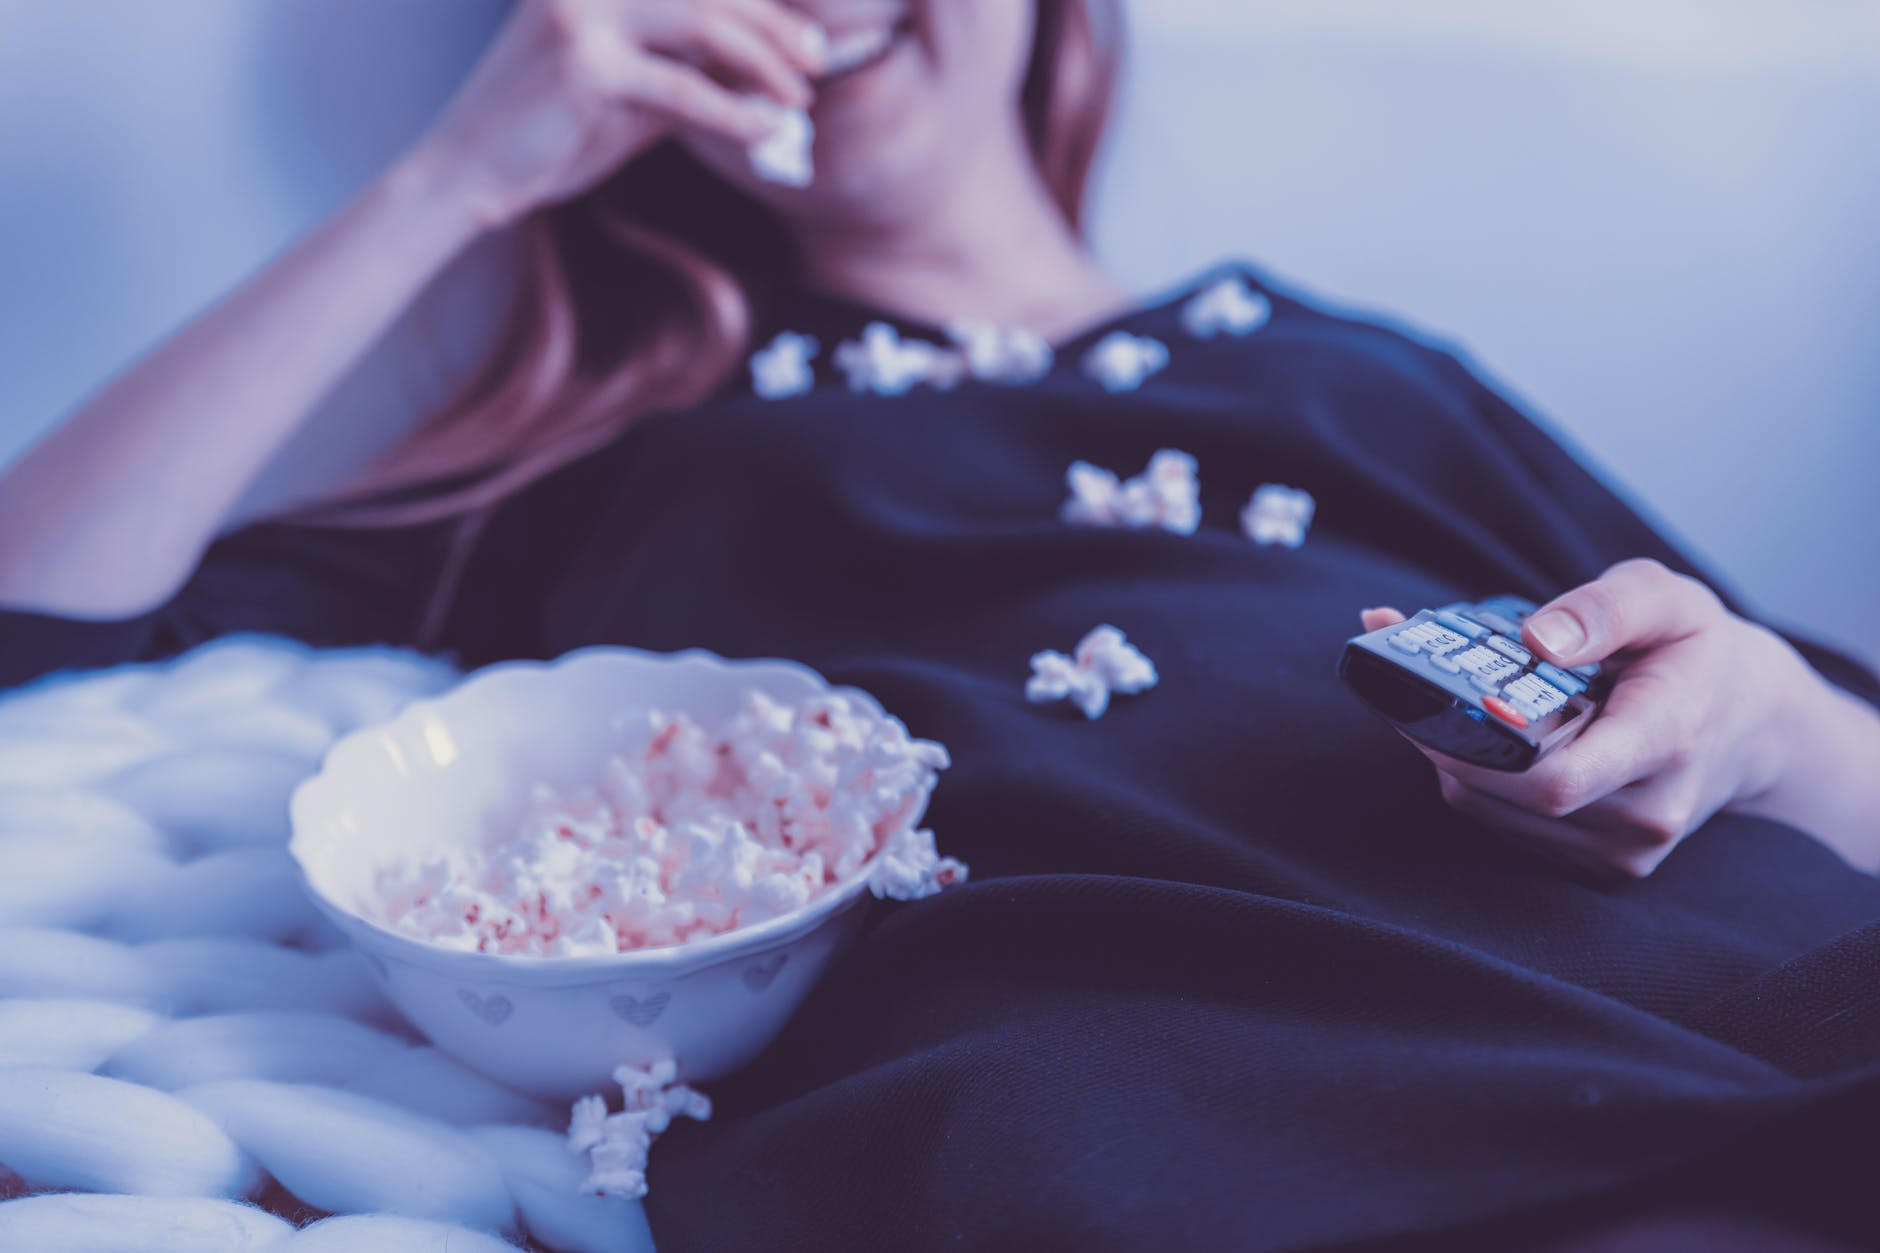 woman watching movies at home while eating popcorn